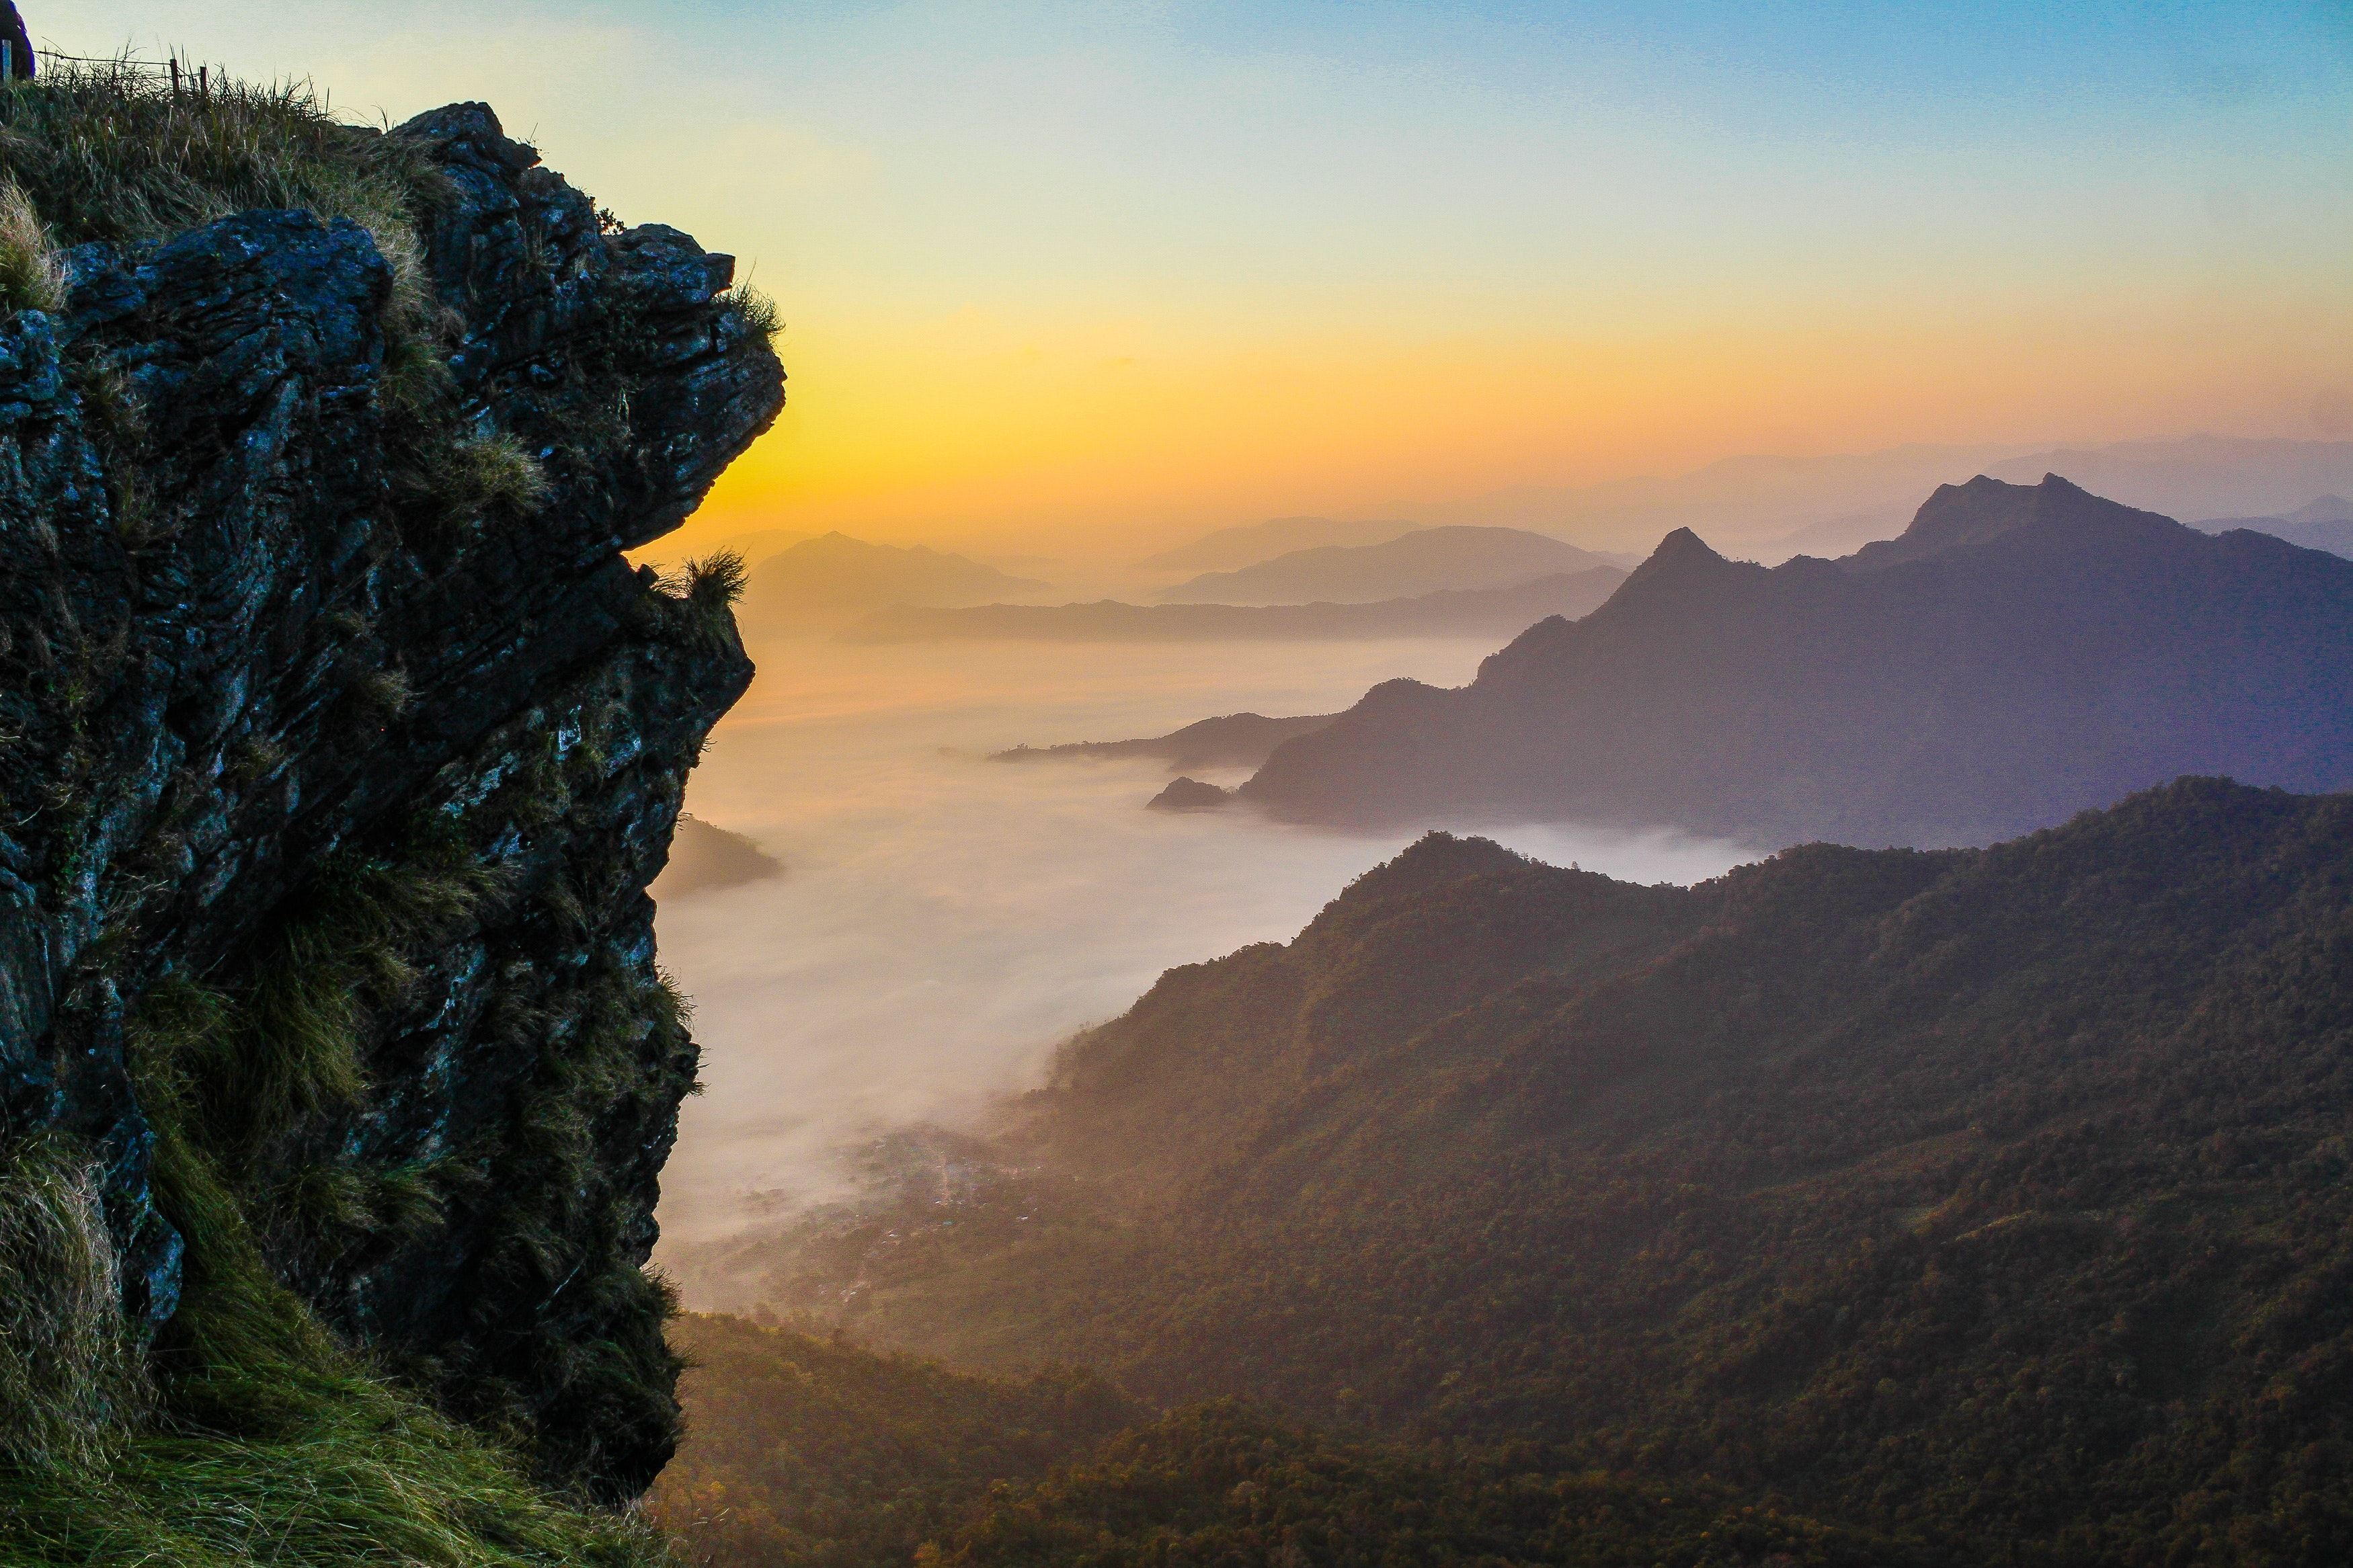 Foggy Mountains at Sunset, Adventure, Scenic, Natural, Nature, HQ Photo